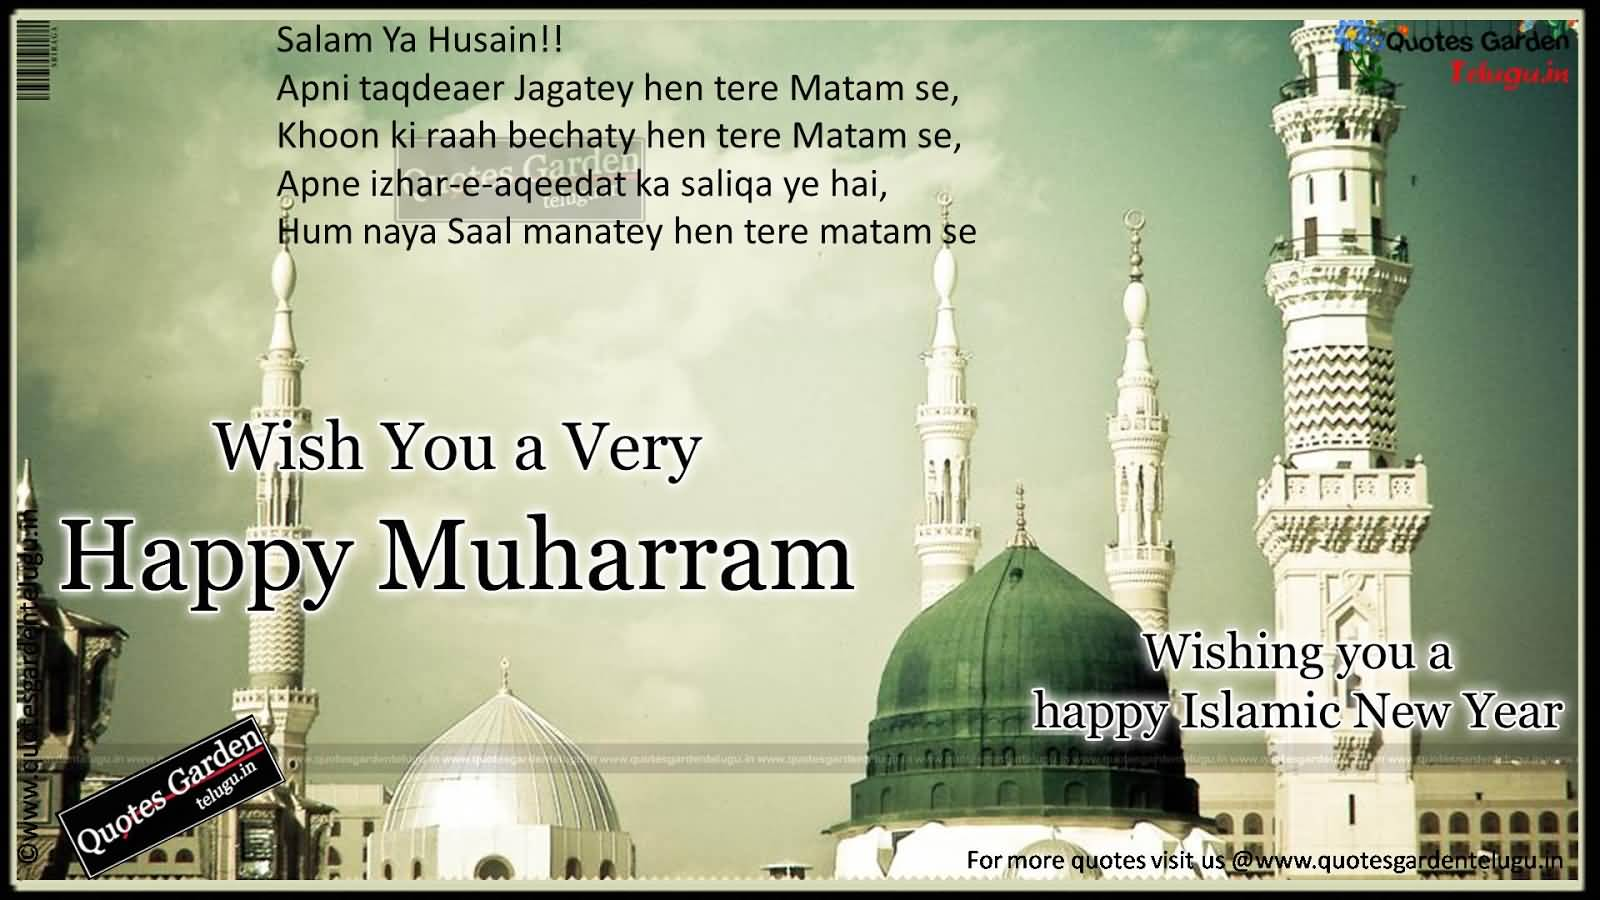 Happy Muharram 2019 Hd Greetings For Desktop